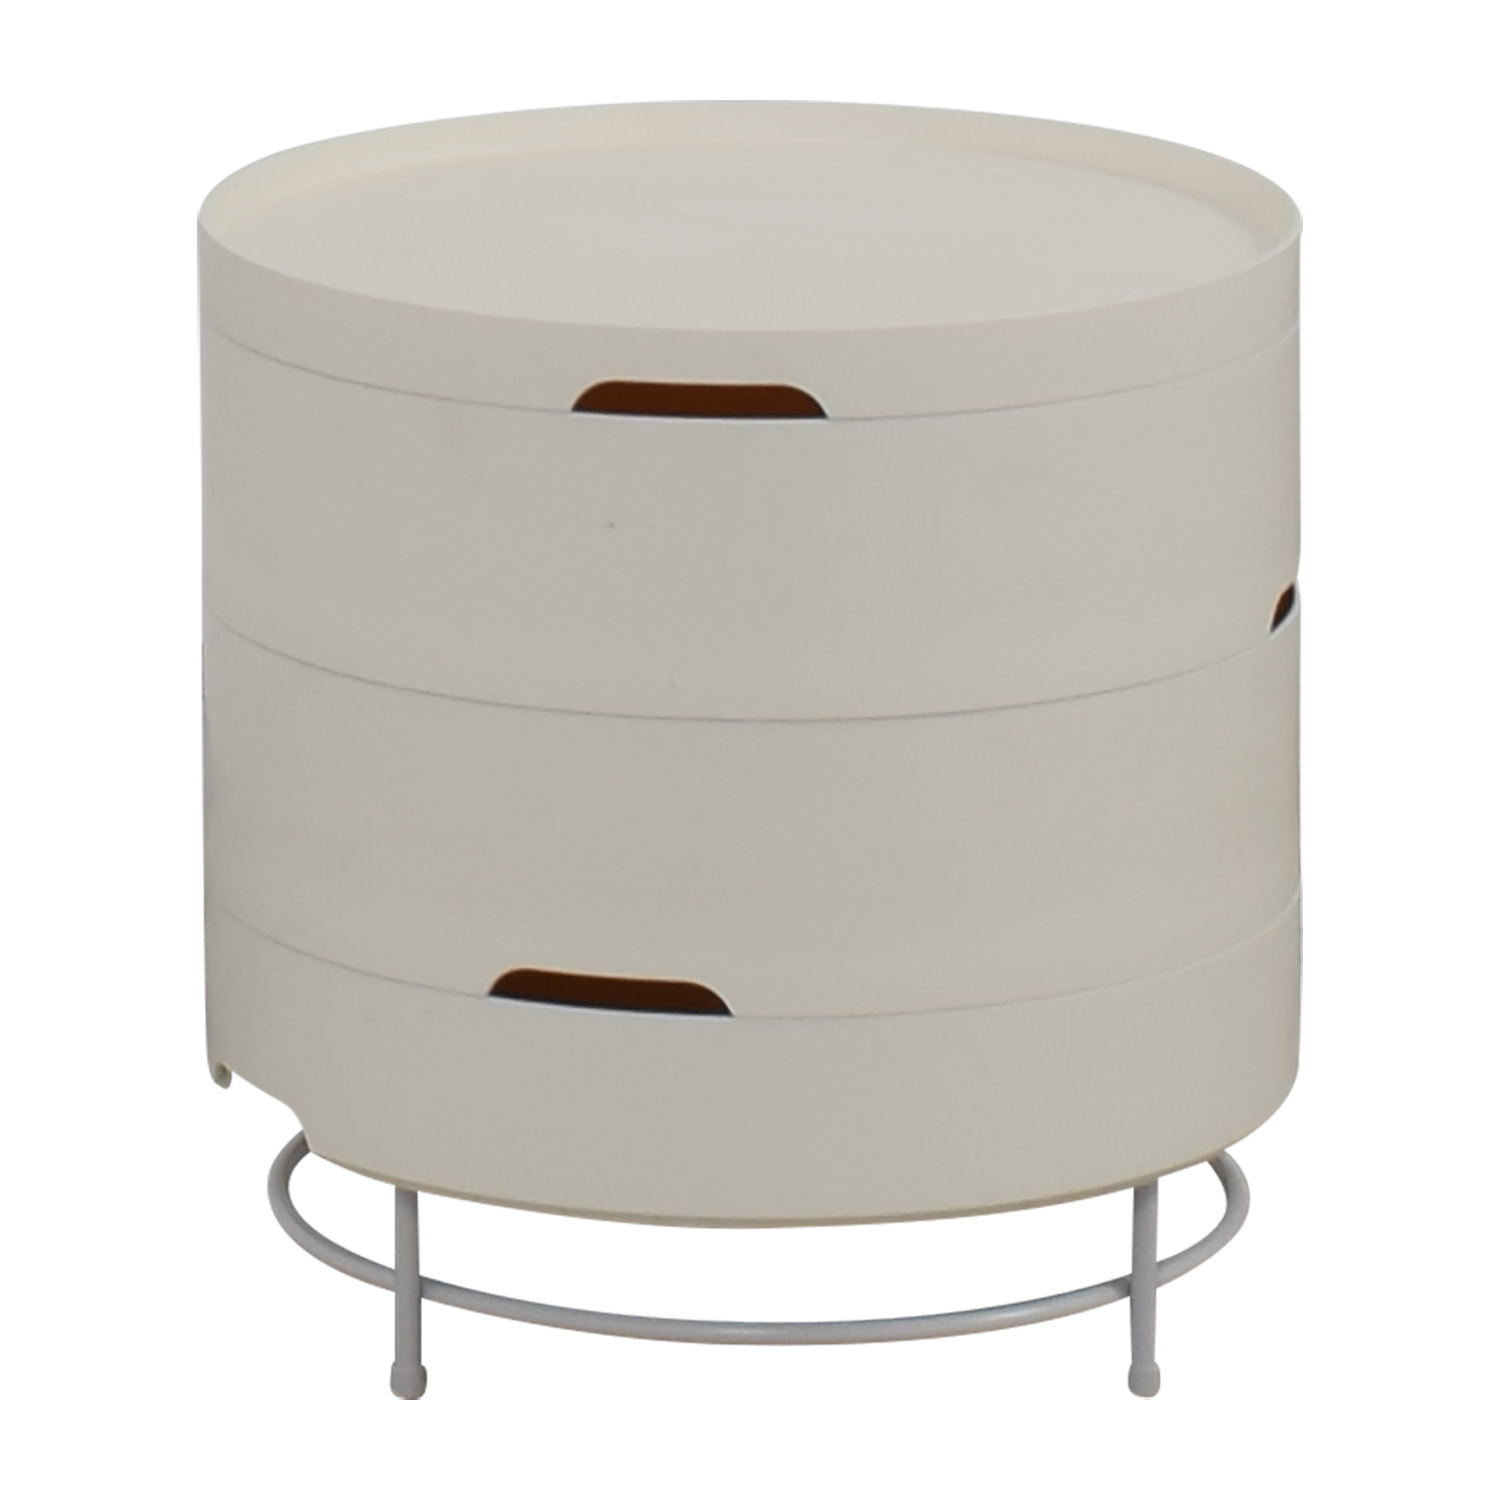 57 off ikea ikea ps 2014 white round storage table tables for Ikea end tables salon